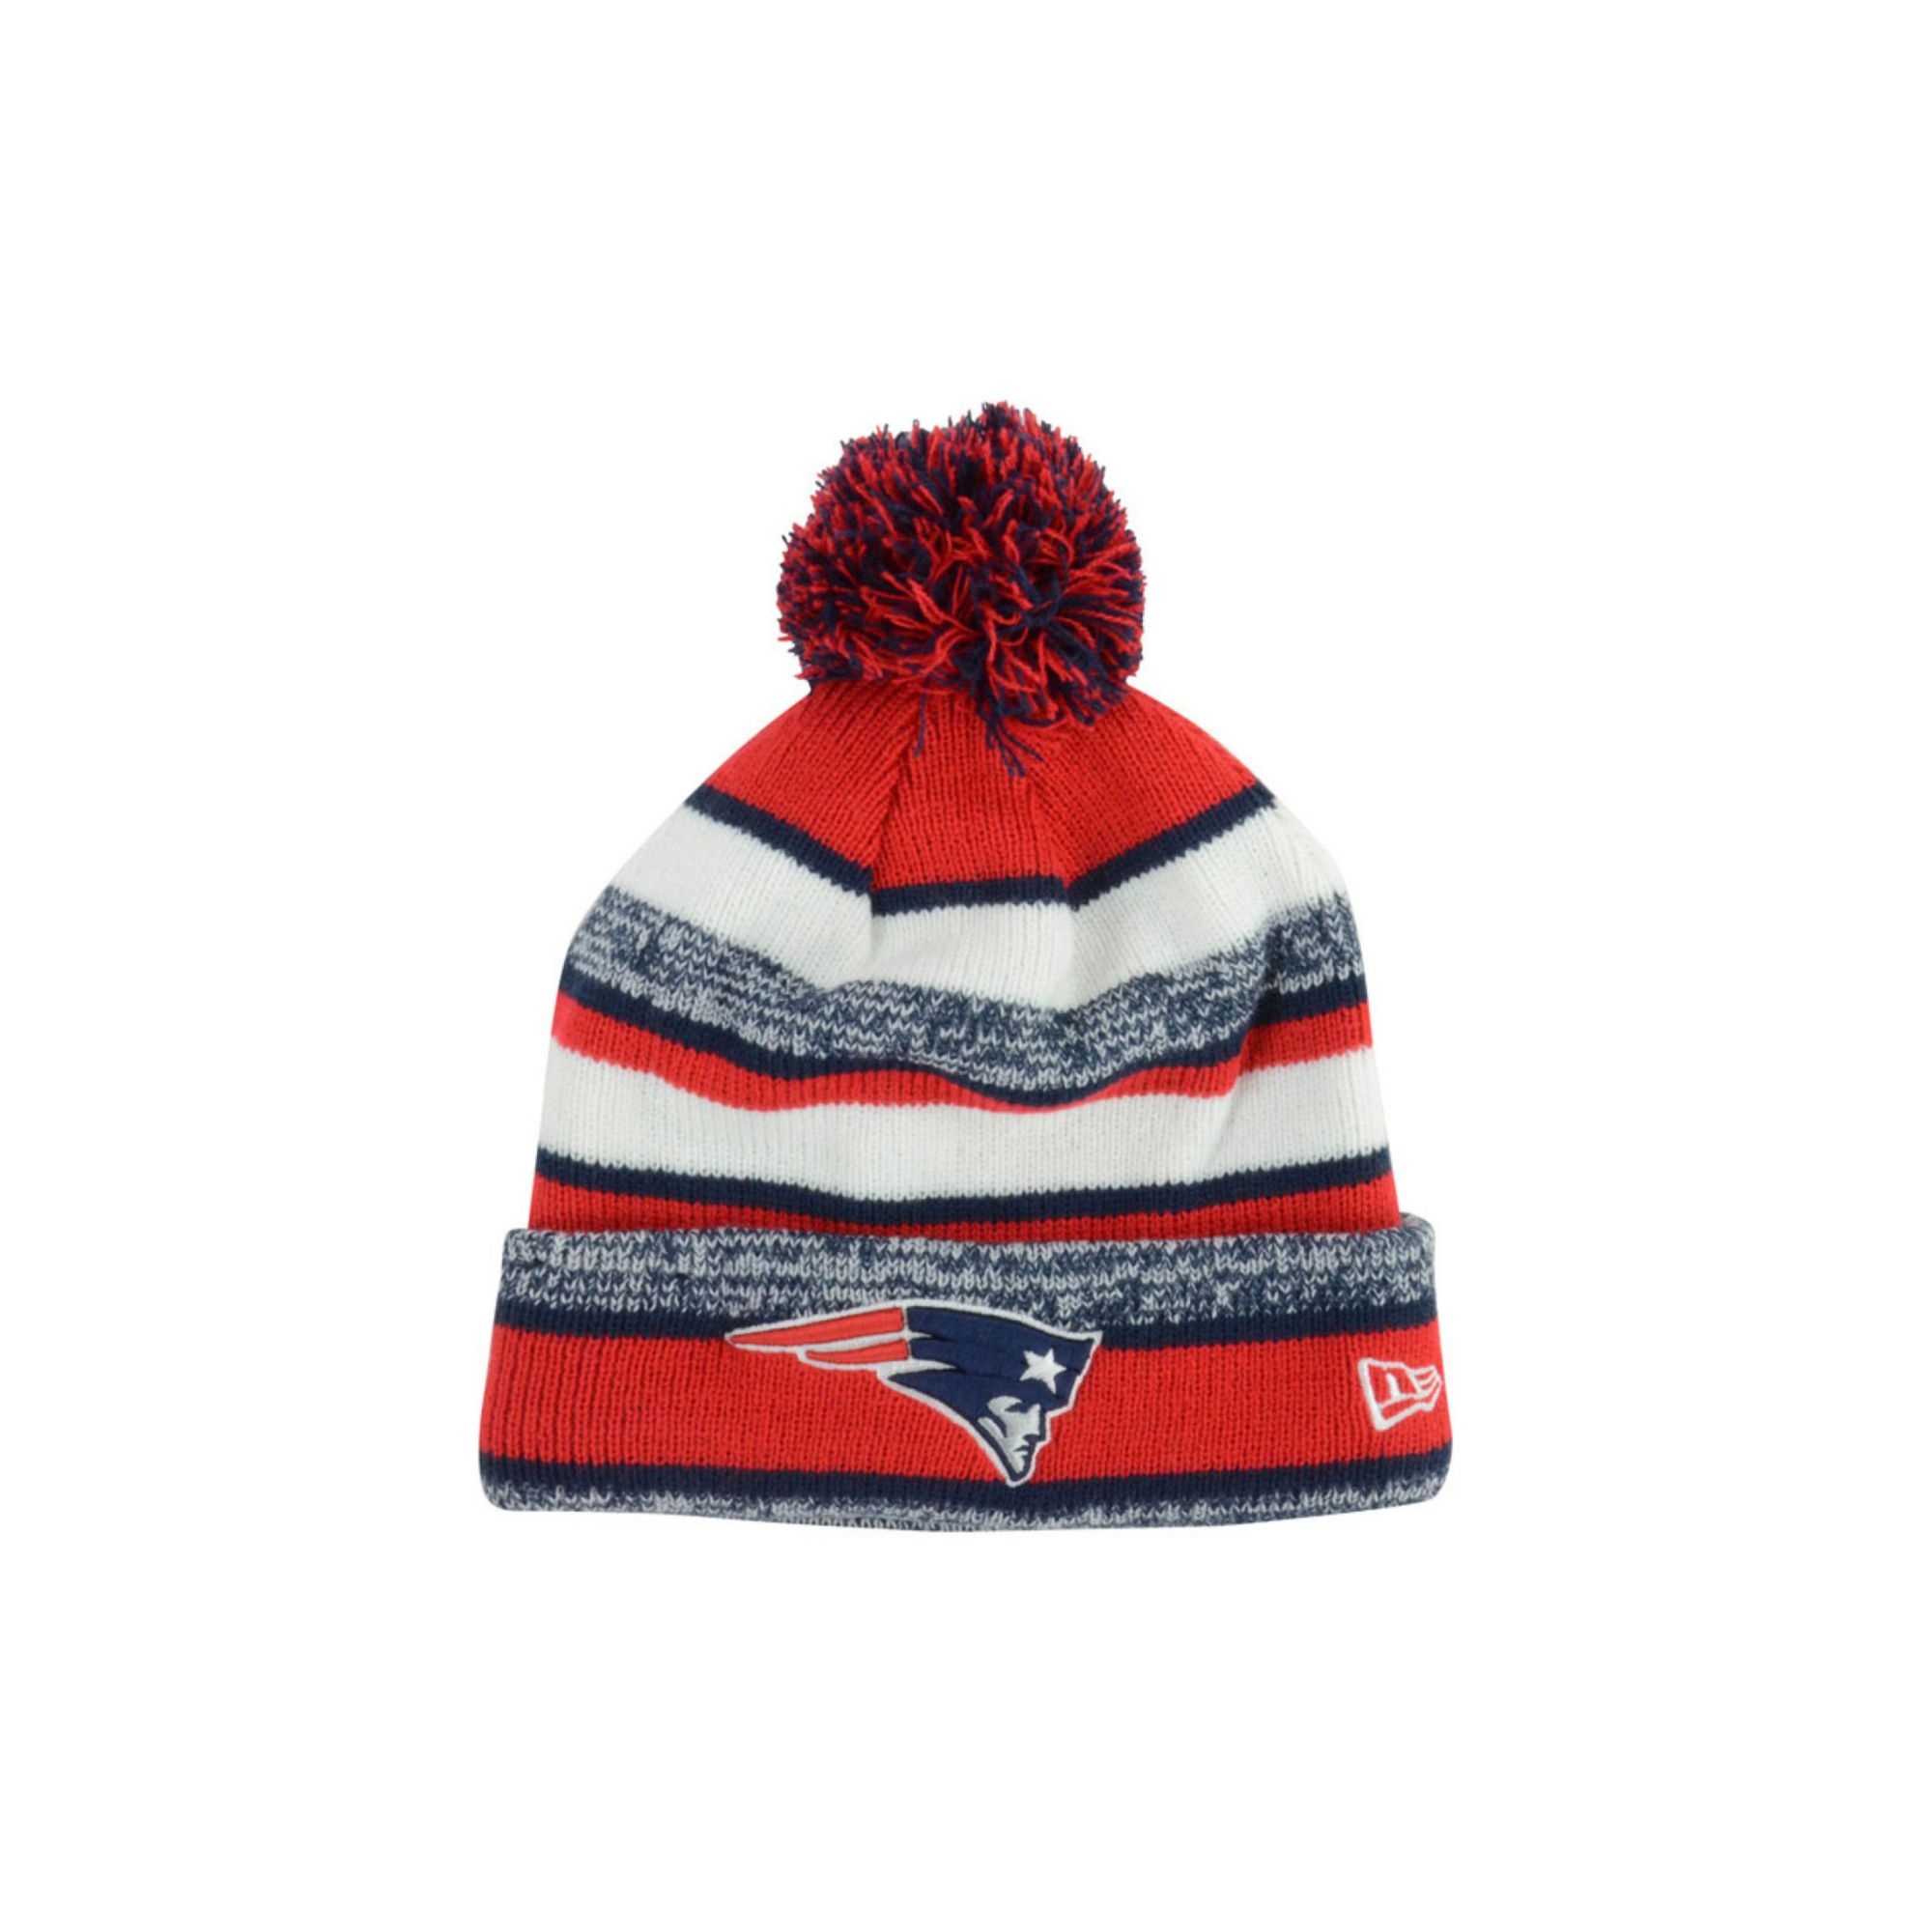 f555fbe181c Lyst - KTZ New England Patriots Sport Knit Hat in Red for Men